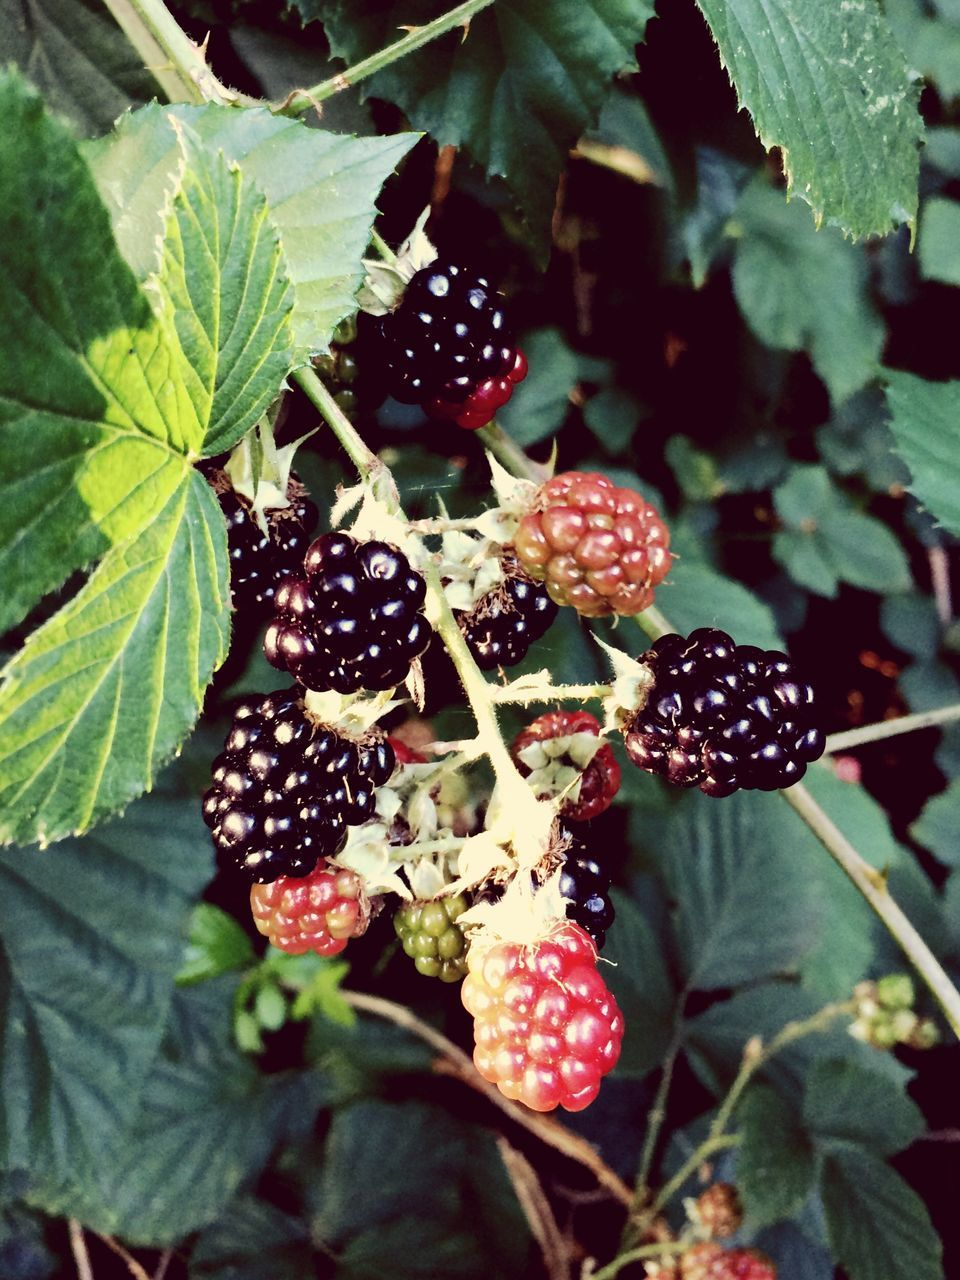 fruit, leaf, berry fruit, freshness, food and drink, blackberry, growth, close-up, plant, no people, outdoors, food, healthy eating, red, nature, green color, day, beauty in nature